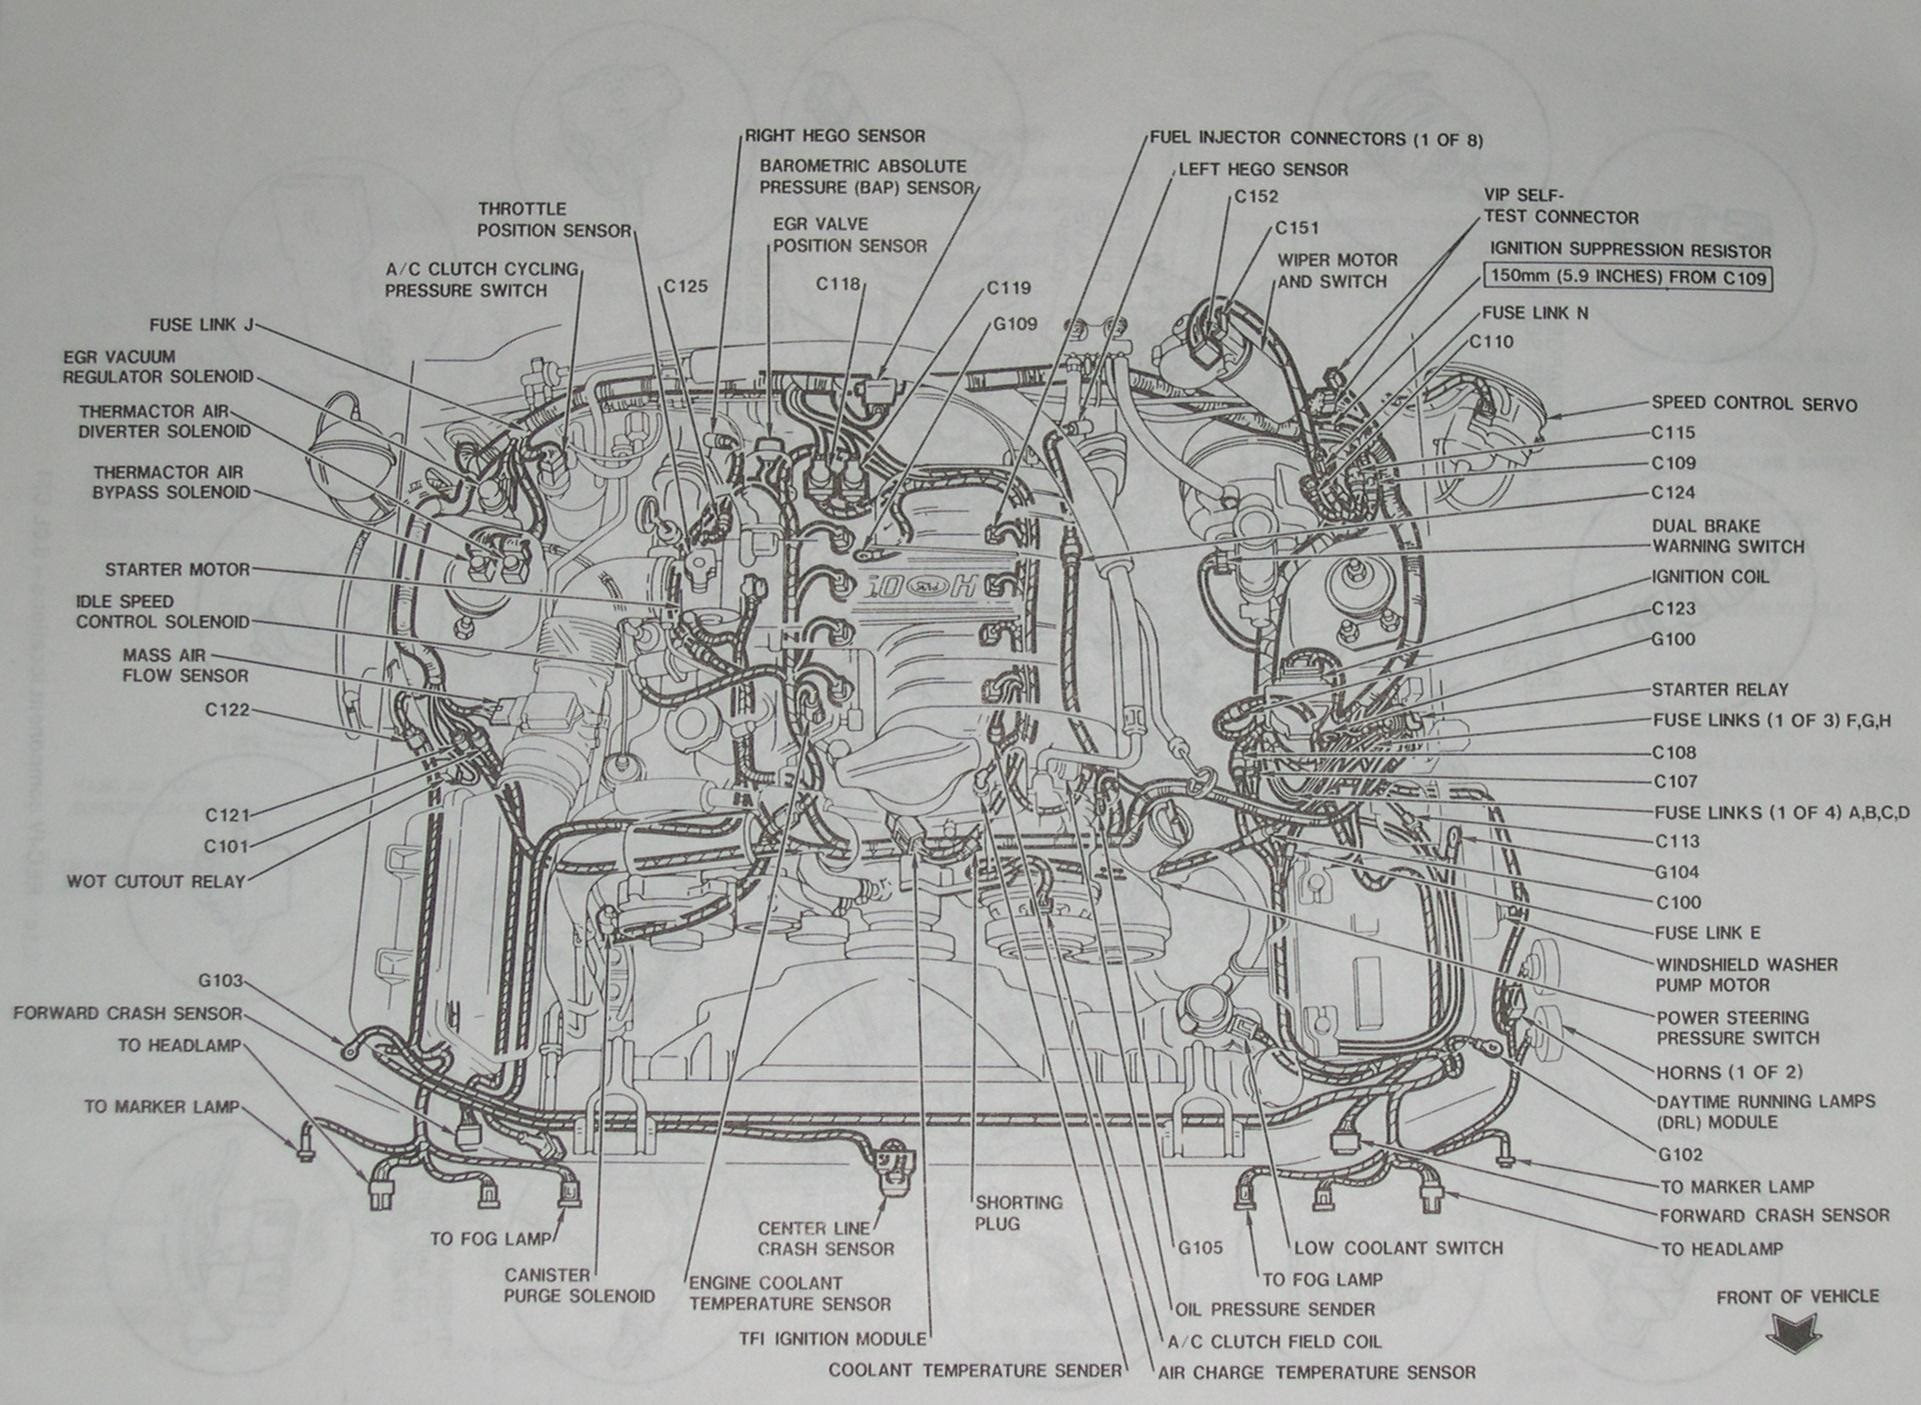 2000 Ford Mustang Engine Diagram Wiring Diagram Corsa C Corsa C Pasticceriagele It